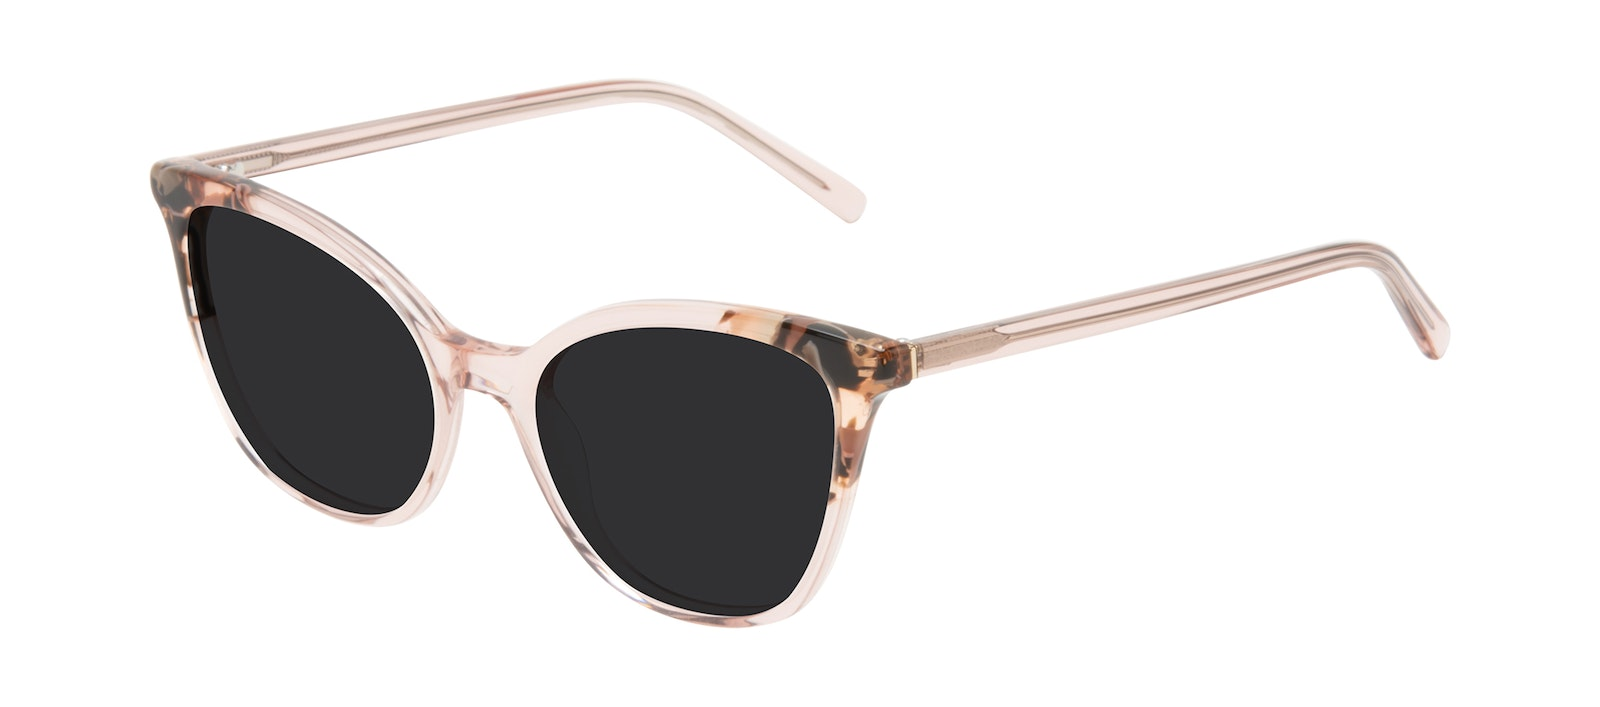 Affordable Fashion Glasses Cat Eye Sunglasses Women Tippi Pink Quartz Tilt